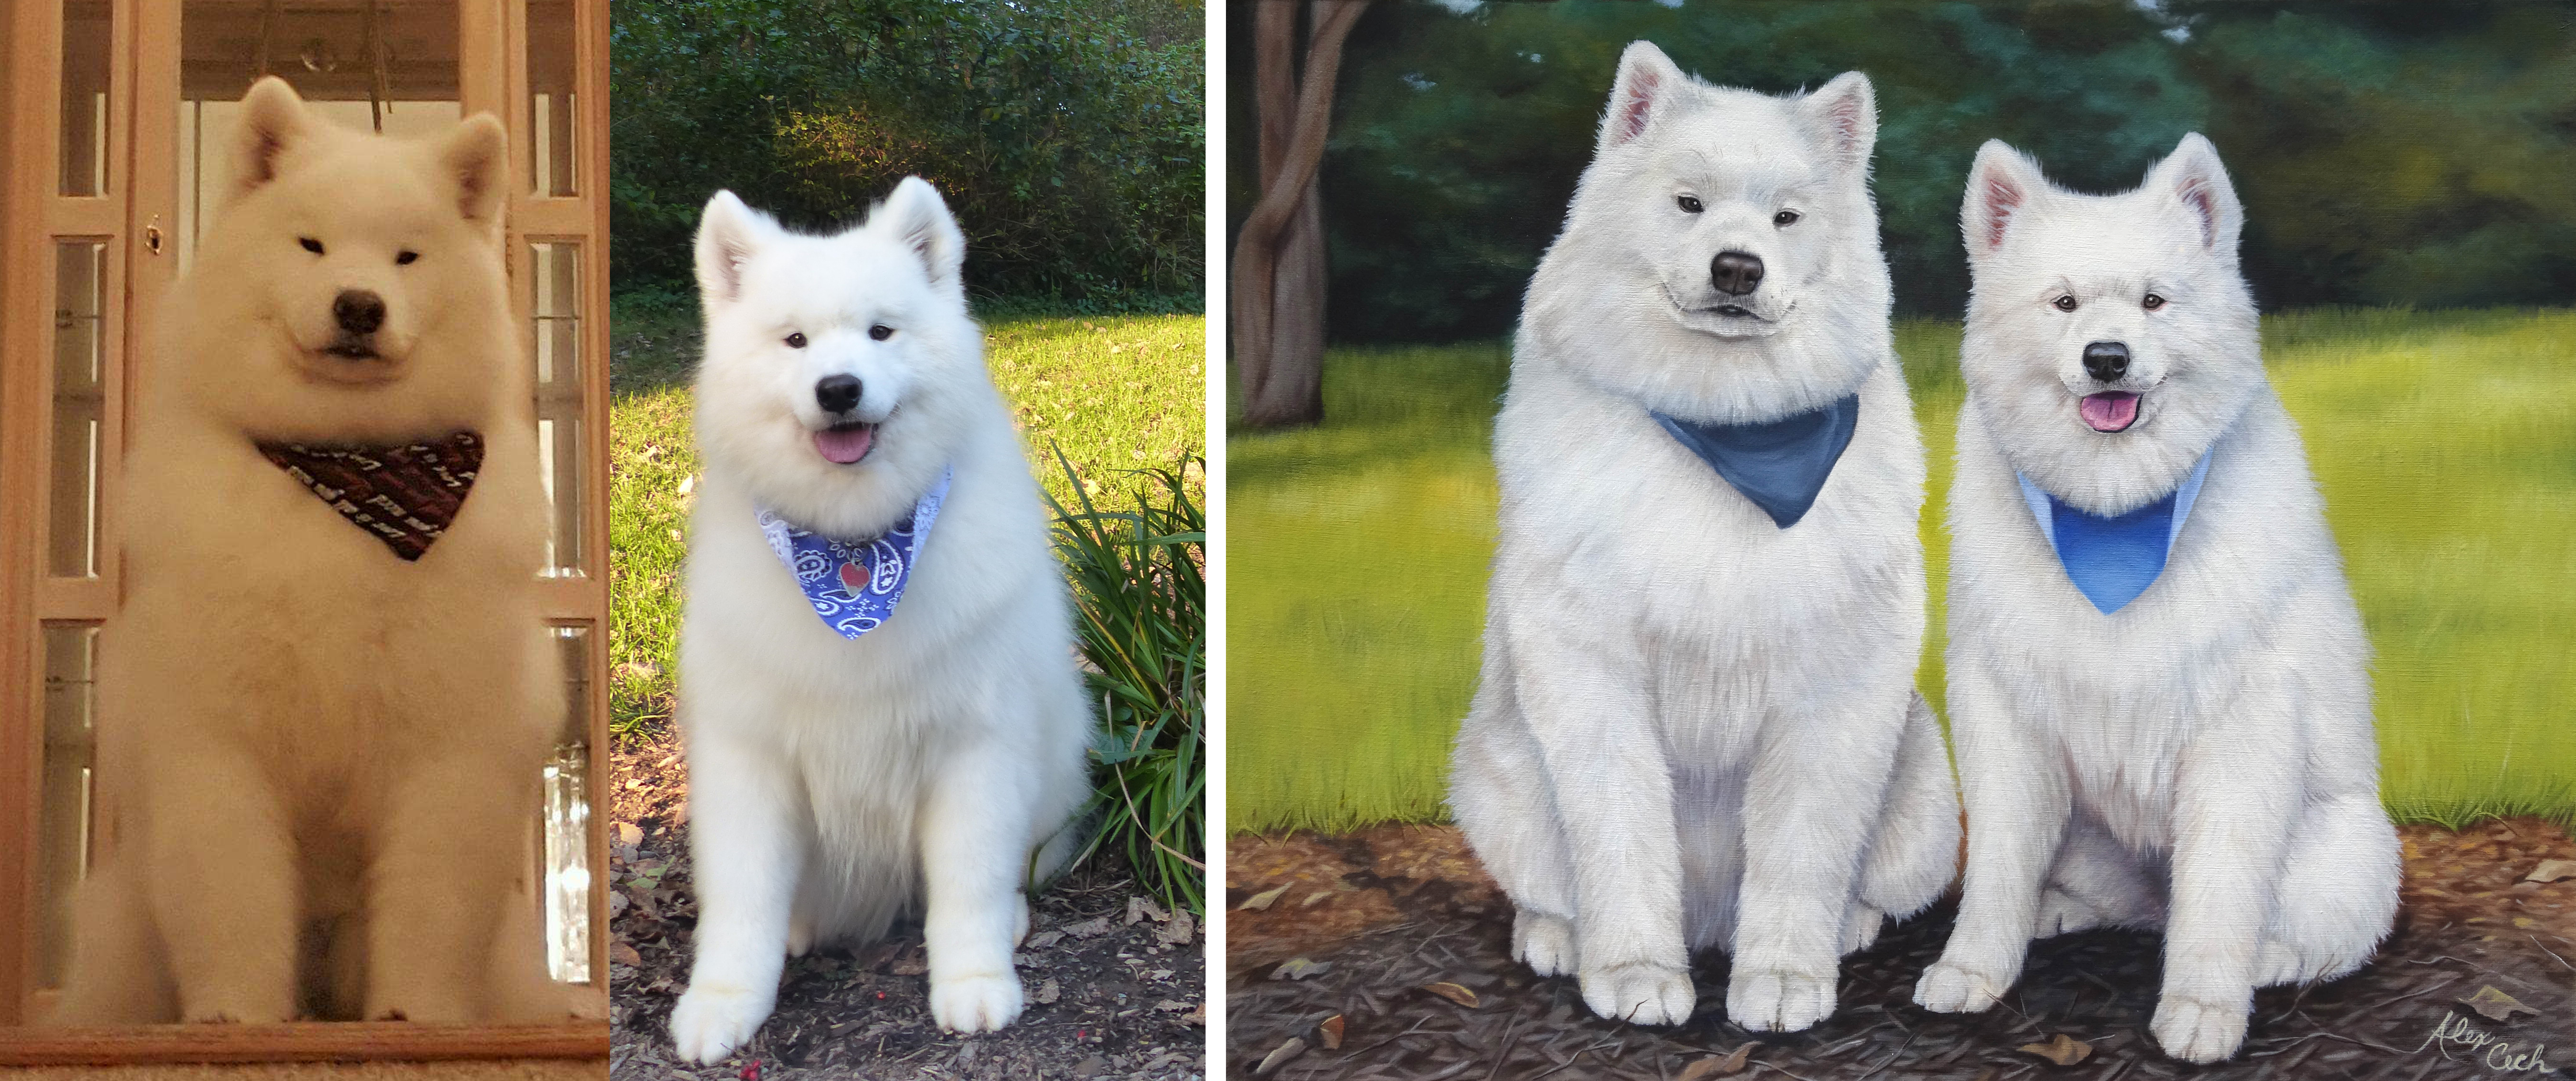 I Paint Pets From Photos, Here Are 12 Of My Favorite Before And Afters (Part 2)